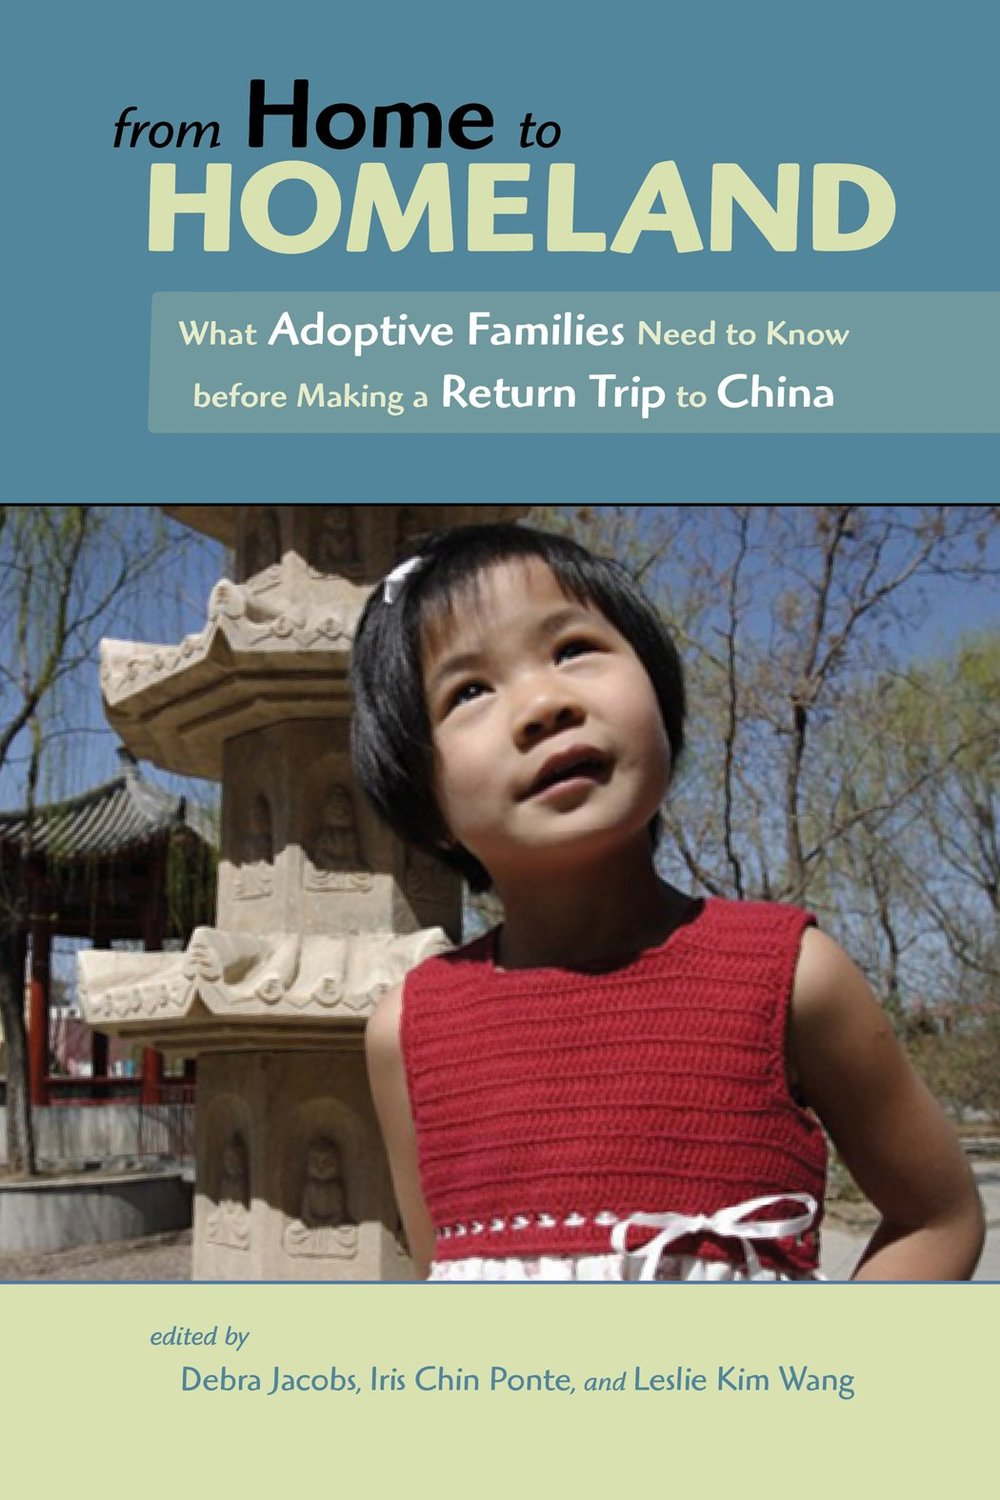 from Home to Homeland - Every year, hundreds of adoptive families embark on homeland trips to China and other countries. Homeland trips offer great opportunities for helping adopted children develop a coherent narrative that makes sense of their complicated beginnings. Although the trip can be a joyful experience, it can also raise many challenges. The chapters of this book by Joyce Maguire Pavao, Jane Brown, Jane Leidtke, Rose Lewis, and many others offer the engaging perspectives of adoptive parents, professionals, researchers, and, most importantly, adopted children themselves. Together, they comprise a unique, invaluable resource that will help families prepare for a homeland trip, make decisions about how to travel, anticipate what they might experience in China, and meaningfully integrate events and emotions after arriving back home. From Home to Homeland is for all internationally adoptive families considering a homeland trip or figuring out how to best make sense of a trip after returning home. -AmazonI'd highly recommend this book as a good resource[image from Amazon]